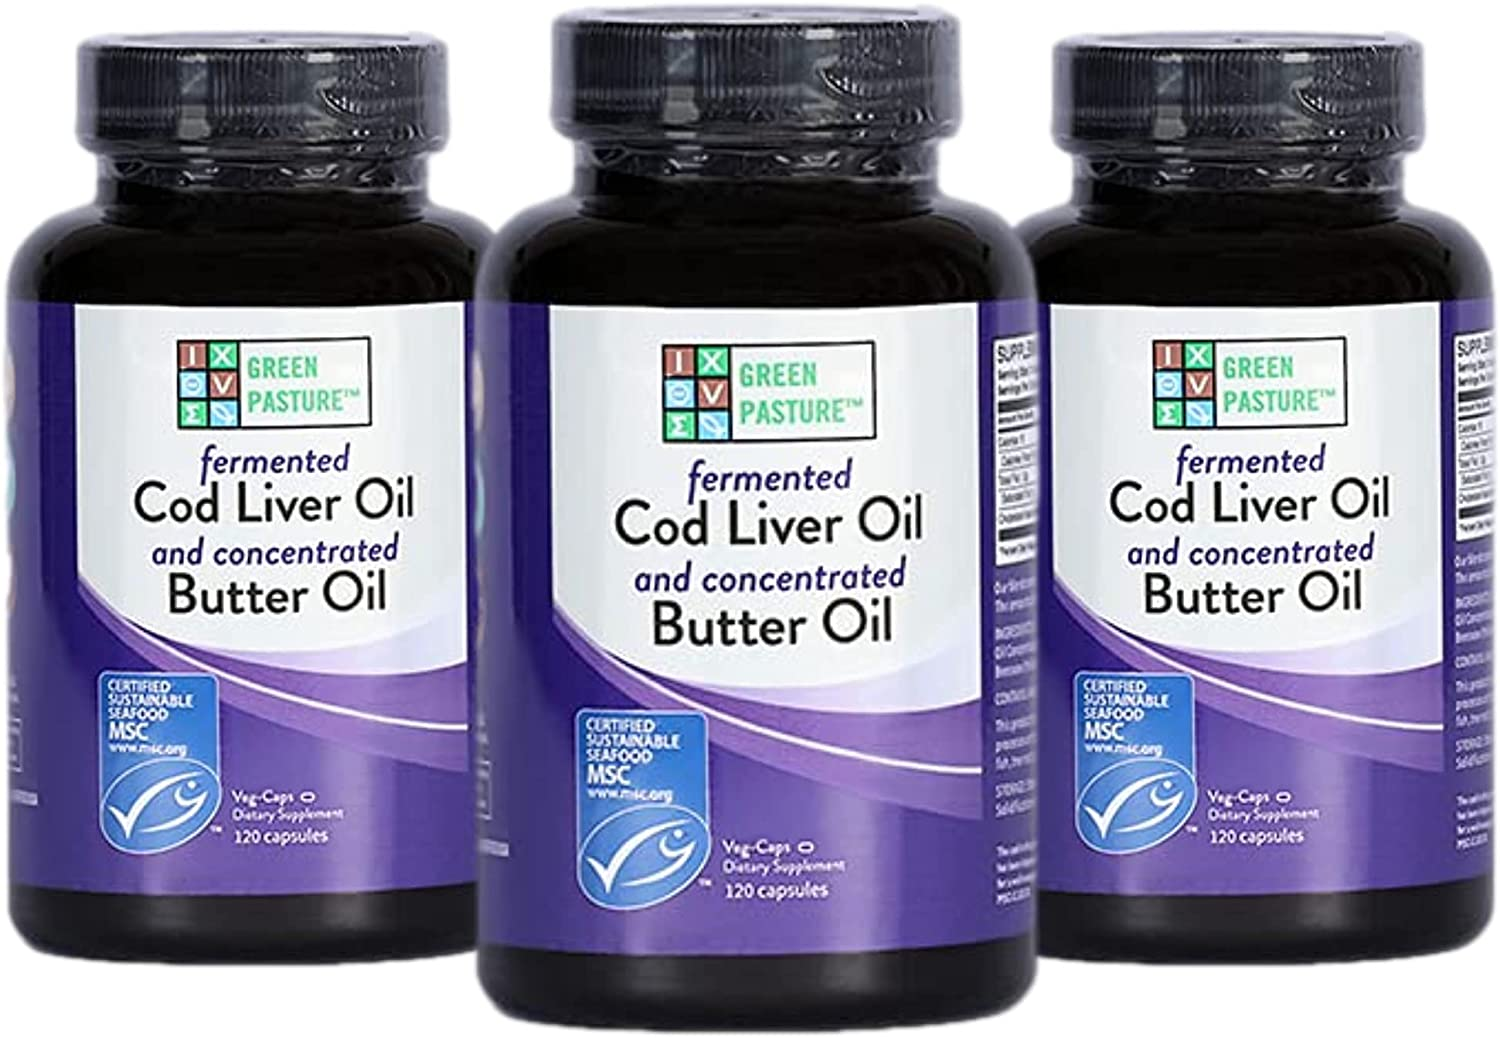 Green Pasture Blue Ice Royal Butter Fermented Cod Liver Oil Cheap 5 ☆ popular mail order specialty store Oi